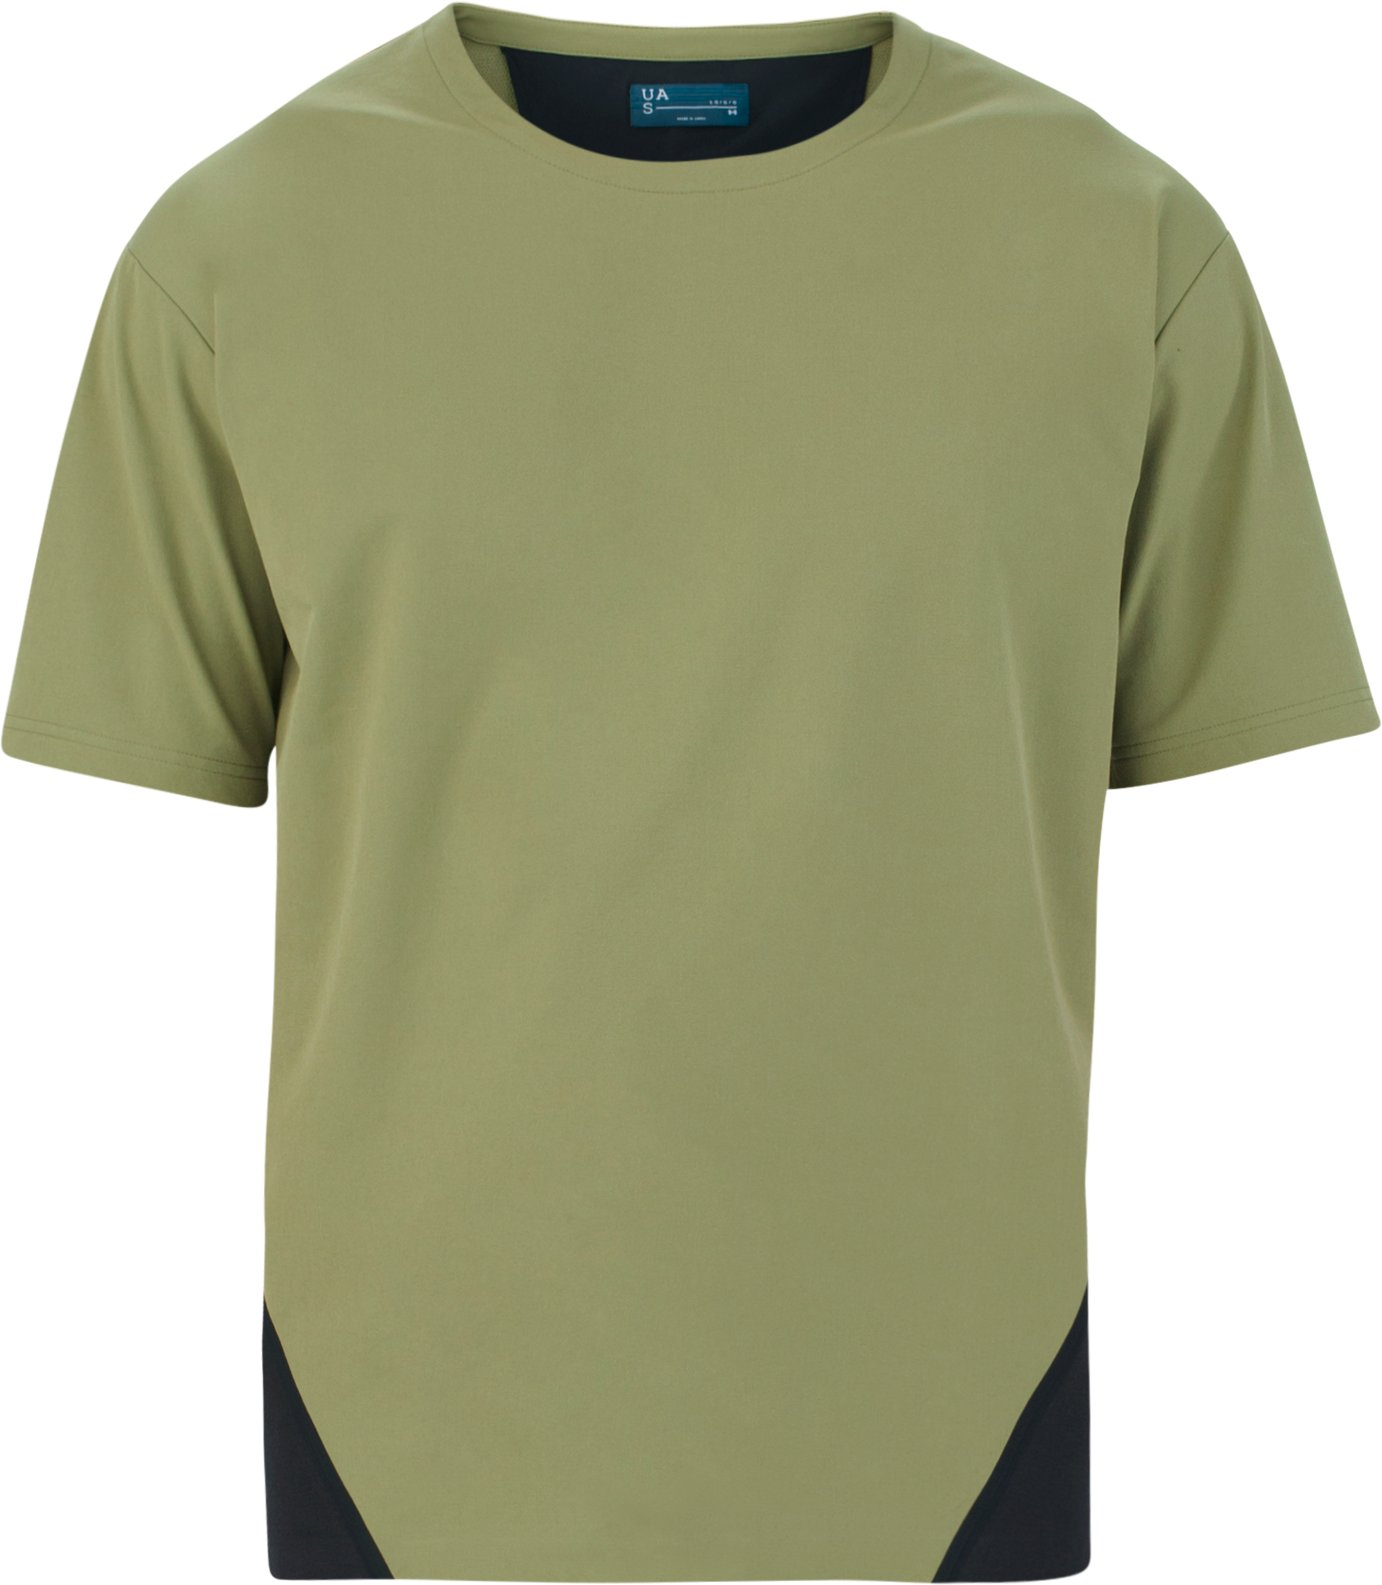 Men's UAS Pivot Crepe Short Sleeve Sweatshirt, MILITARY, undefined